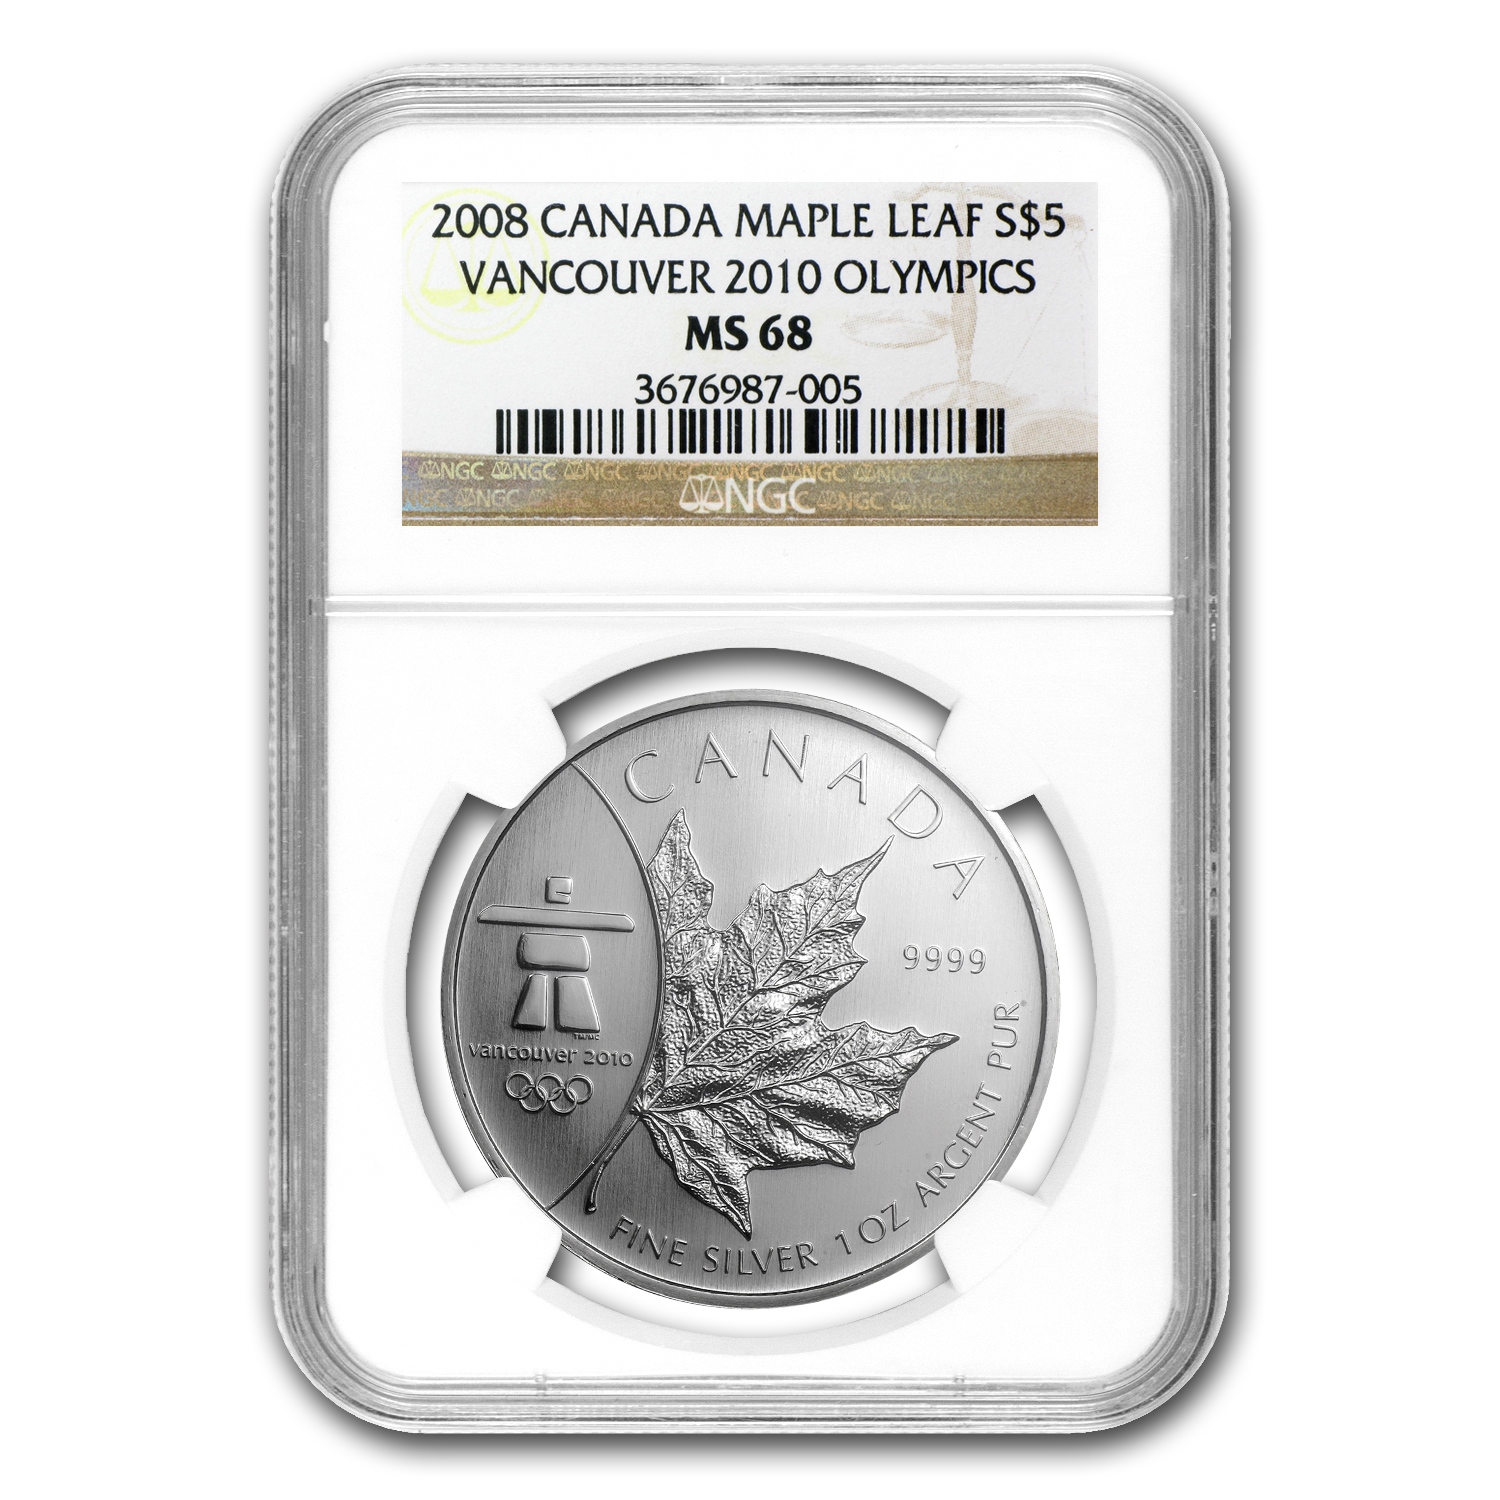 2008 1 oz Silver Canadian Maple Leaf MS-68 NGC (Vancouver)